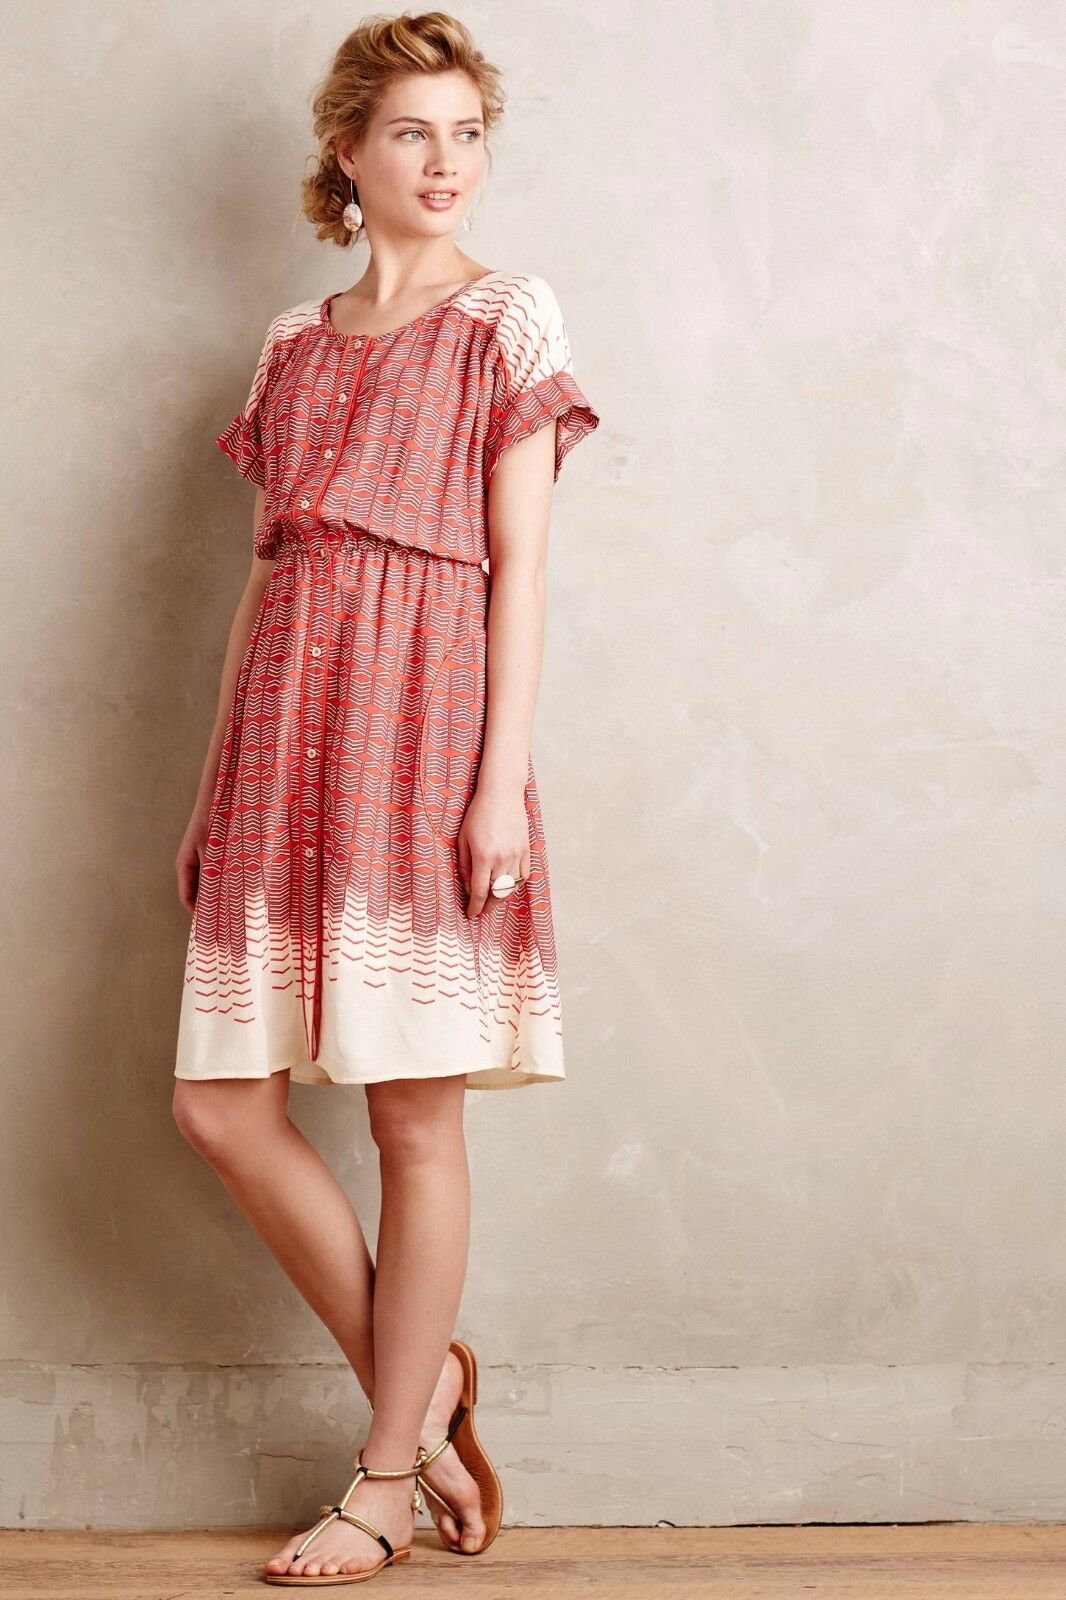 NWT Anthropologie Veronia Shirtdress by Maeve, L, Red, Adorable Adorable Adorable Loose Fit d2fb0c